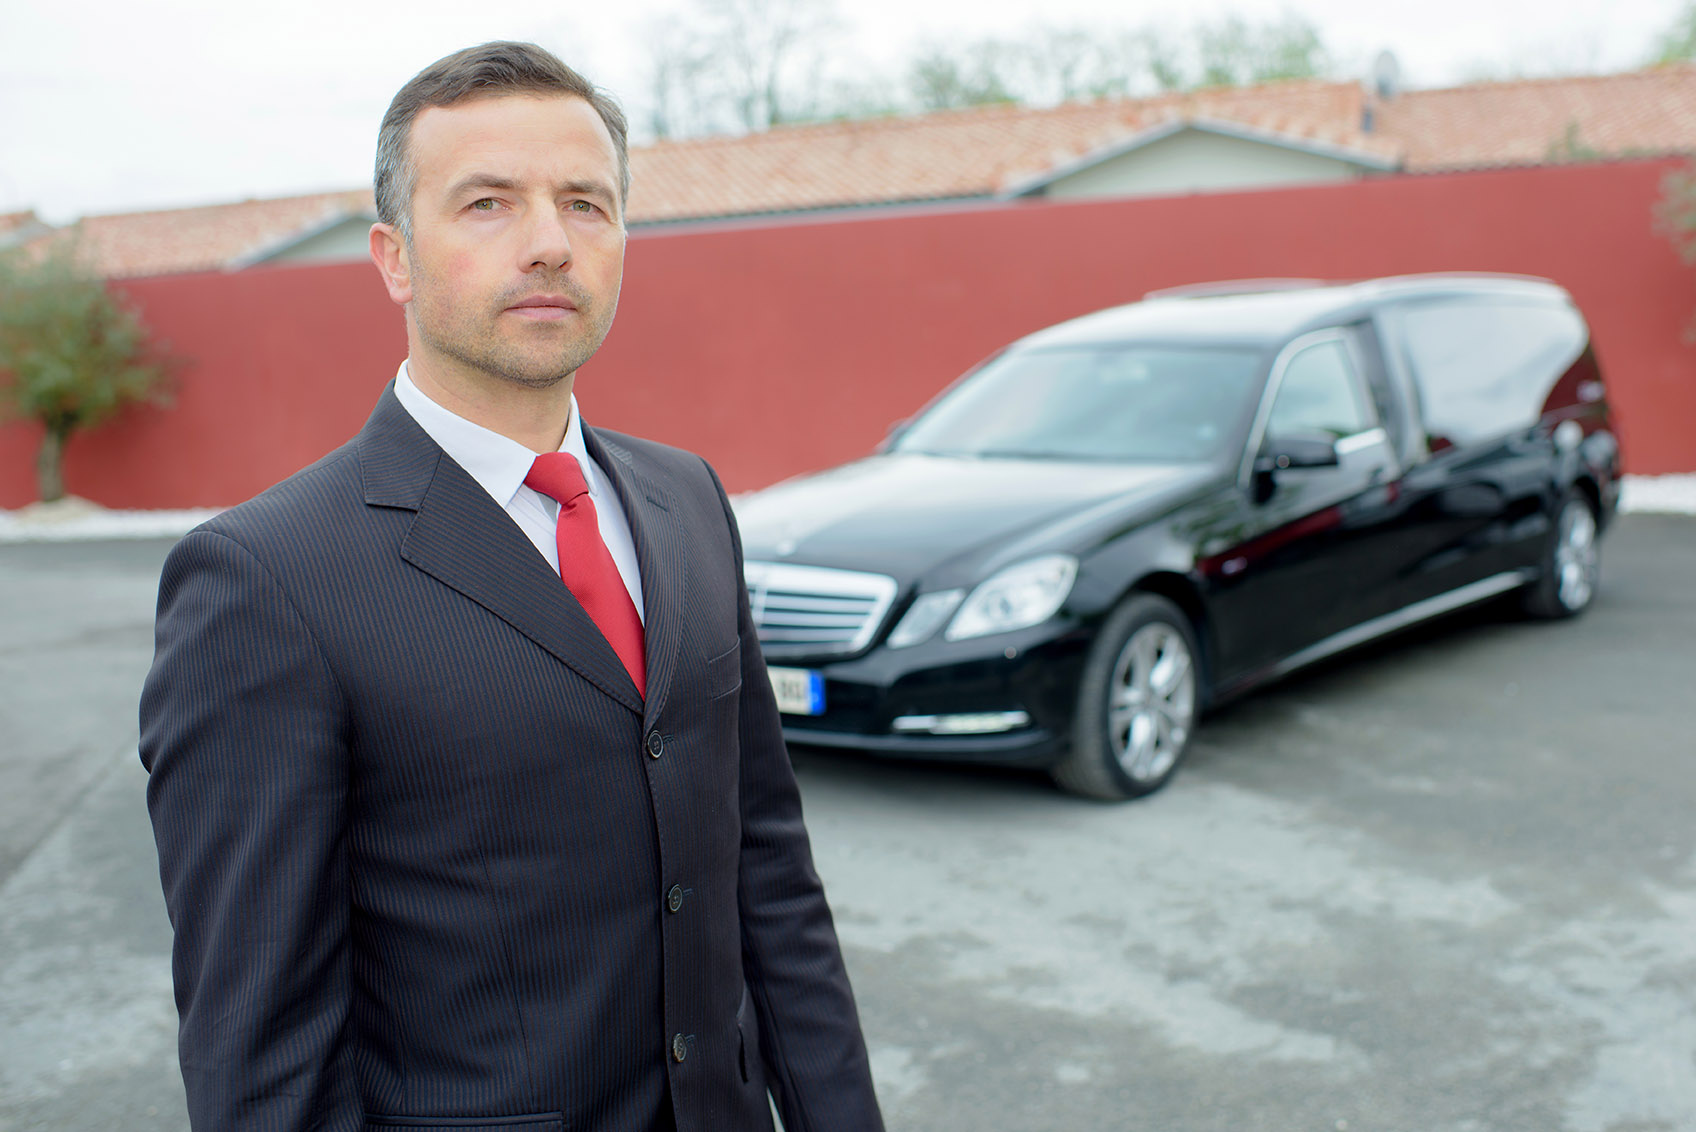 Funeral director in front of funeral cars